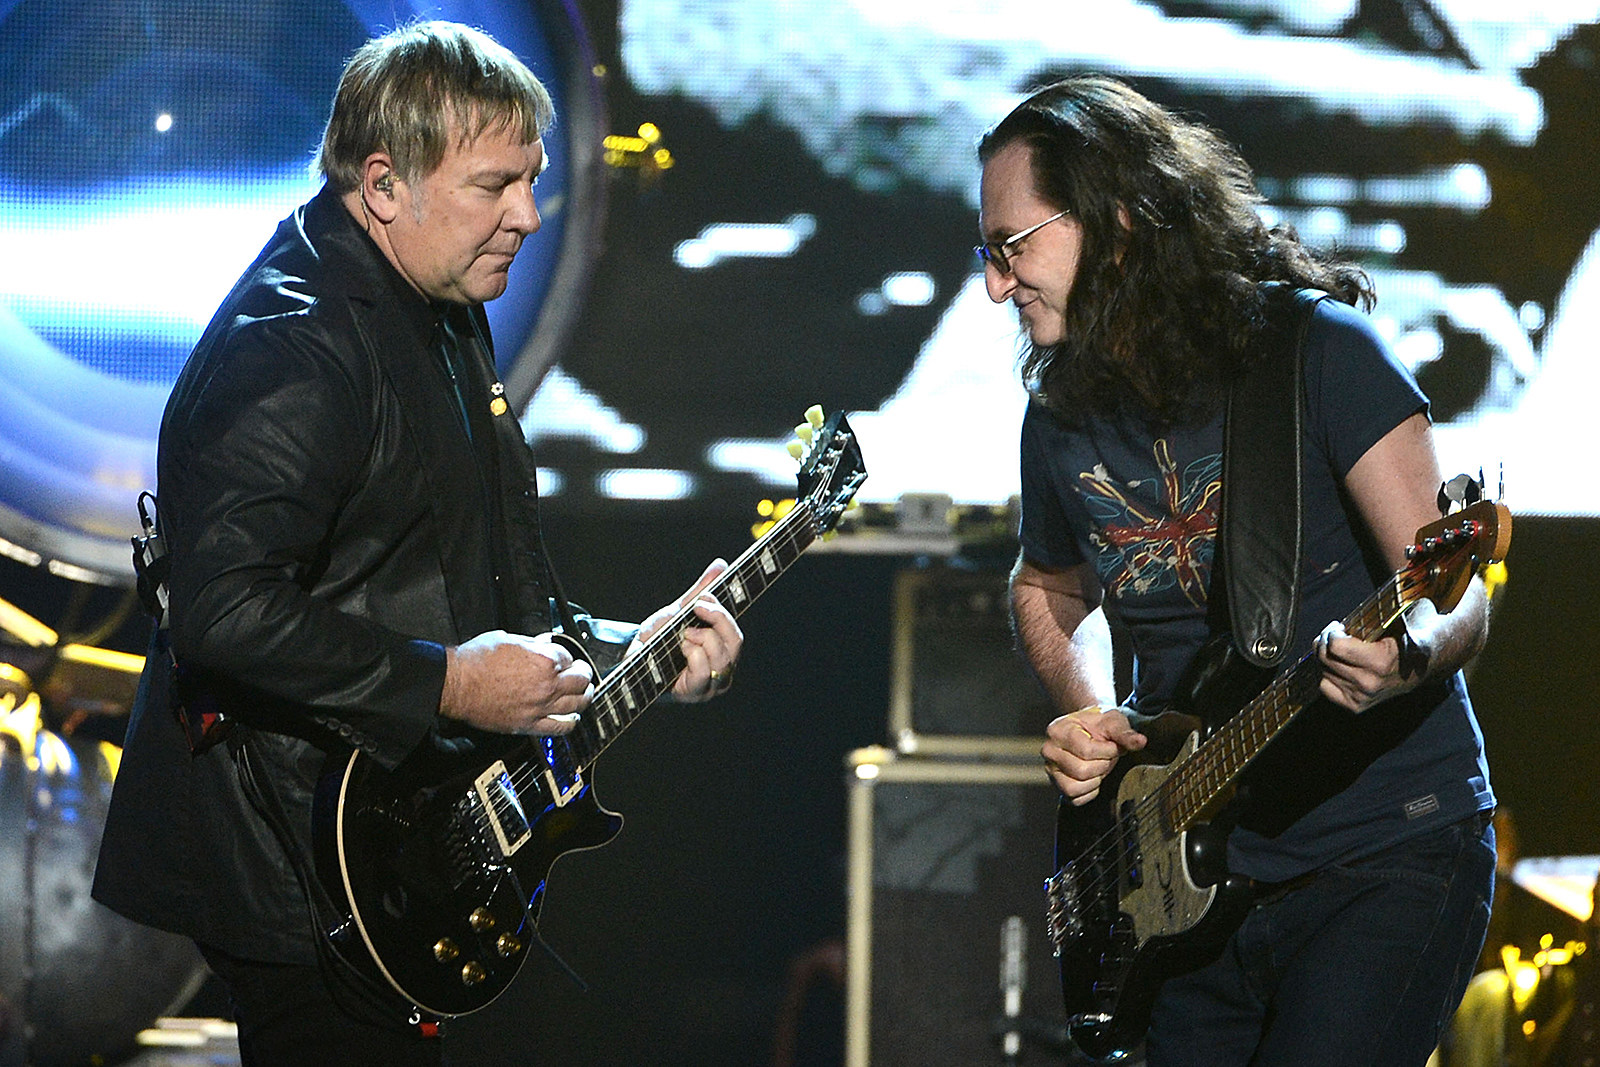 Alex Lifeson Says There's No Urgency for New Music With Geddy Lee